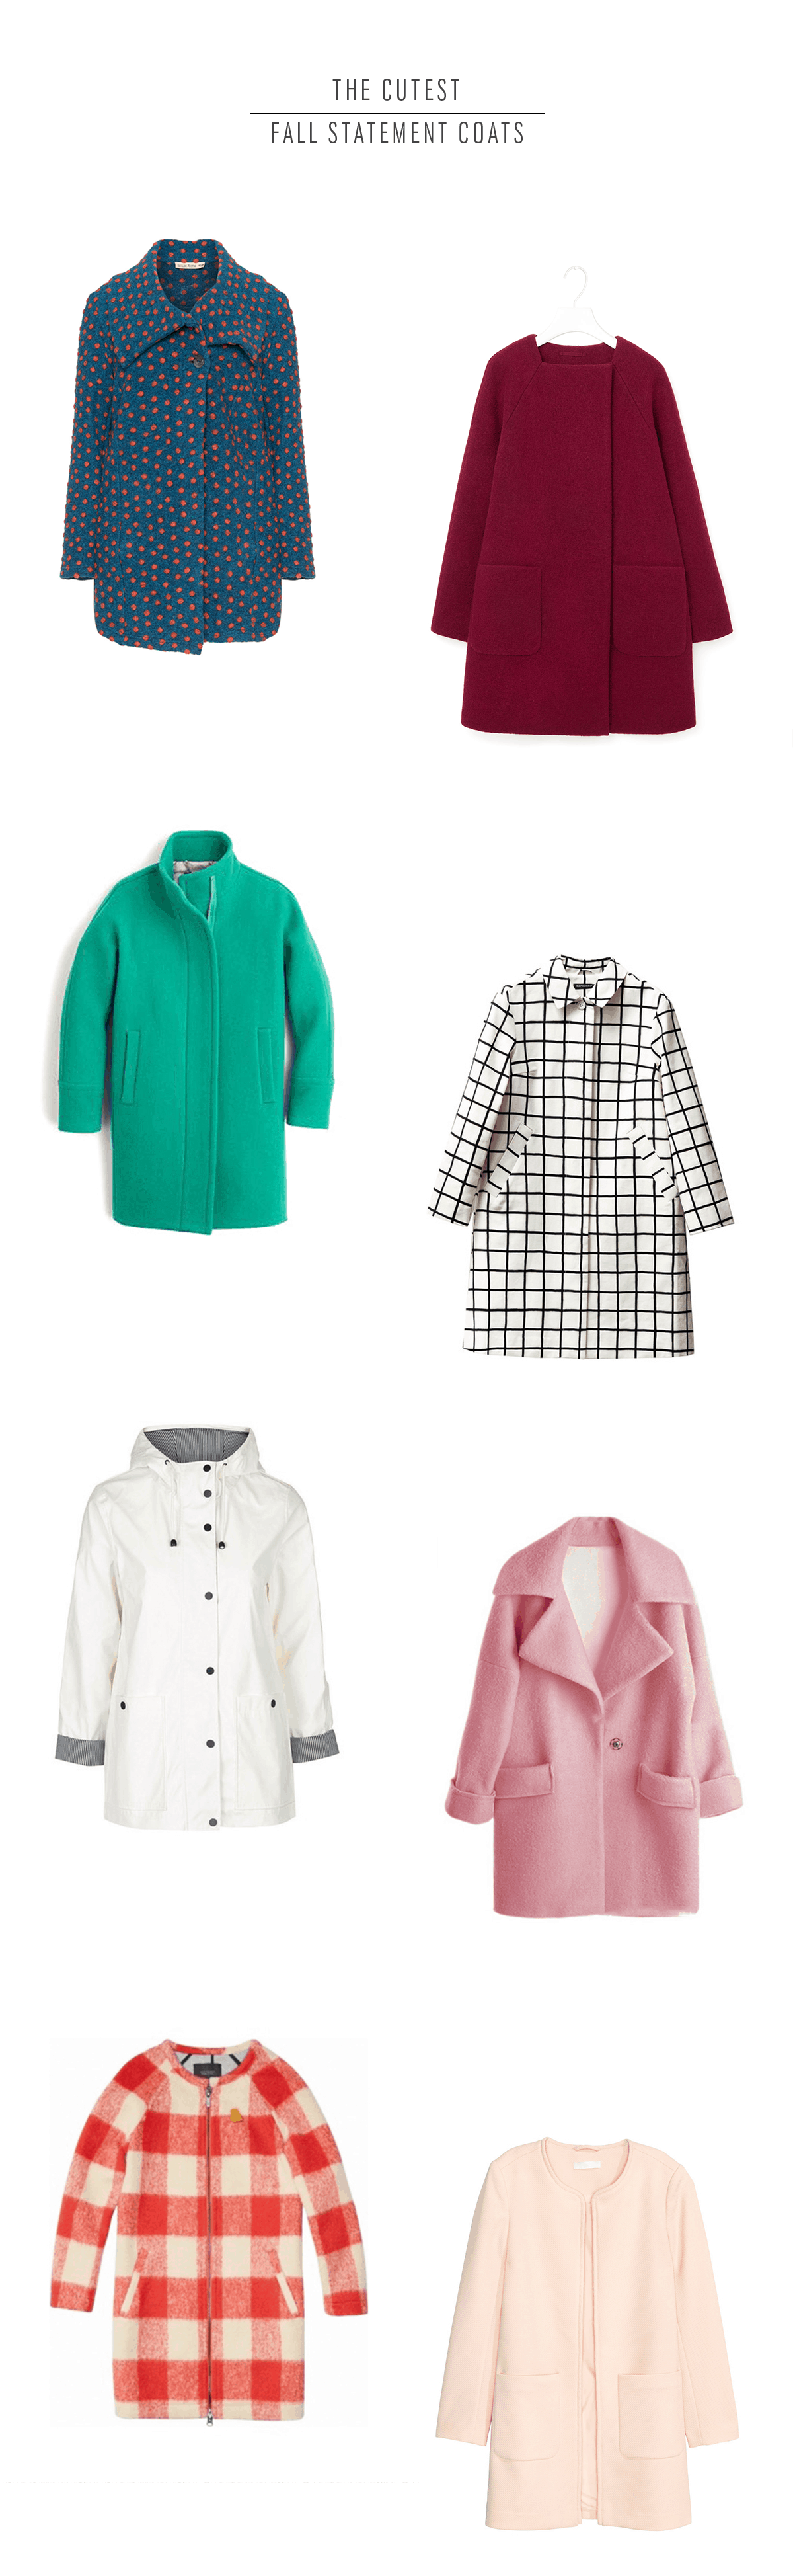 The Cutest Fall Statement Coats - Sugar & Cloth - Houston Blogger - Style - Winter